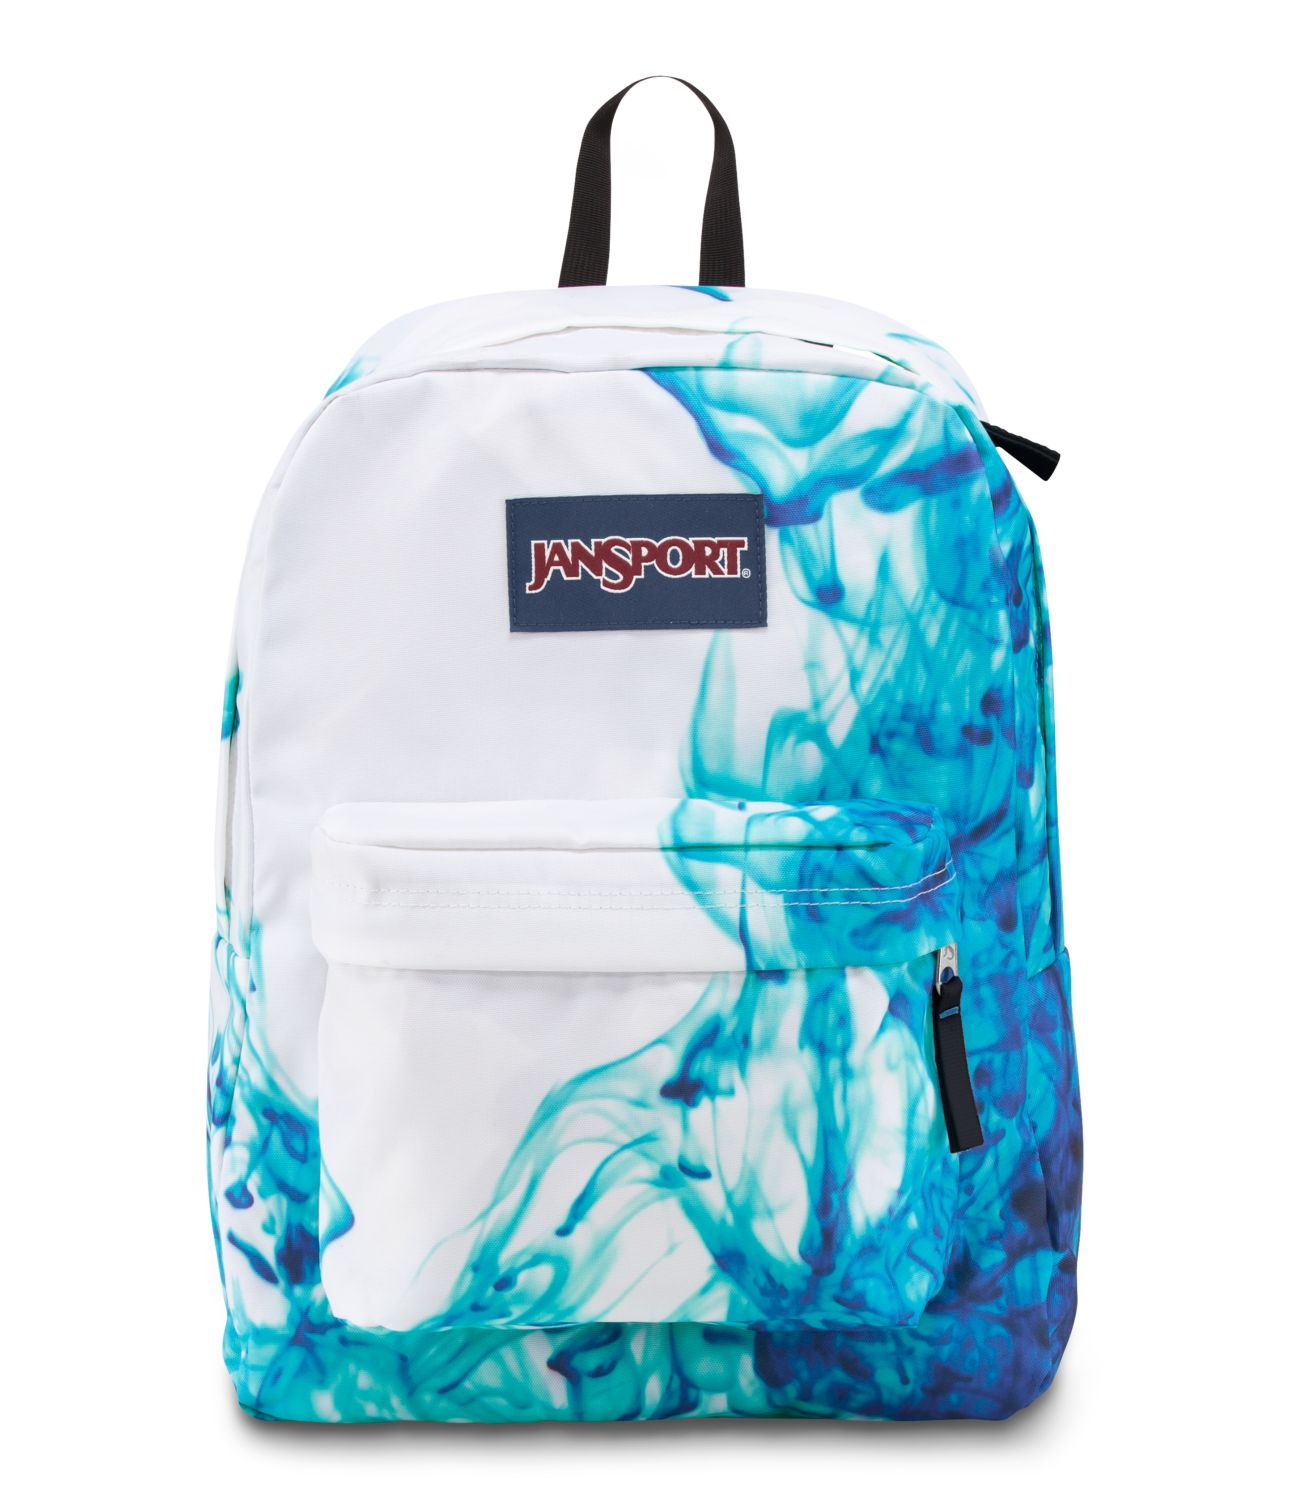 School Backpacks Jansport Na8ledha